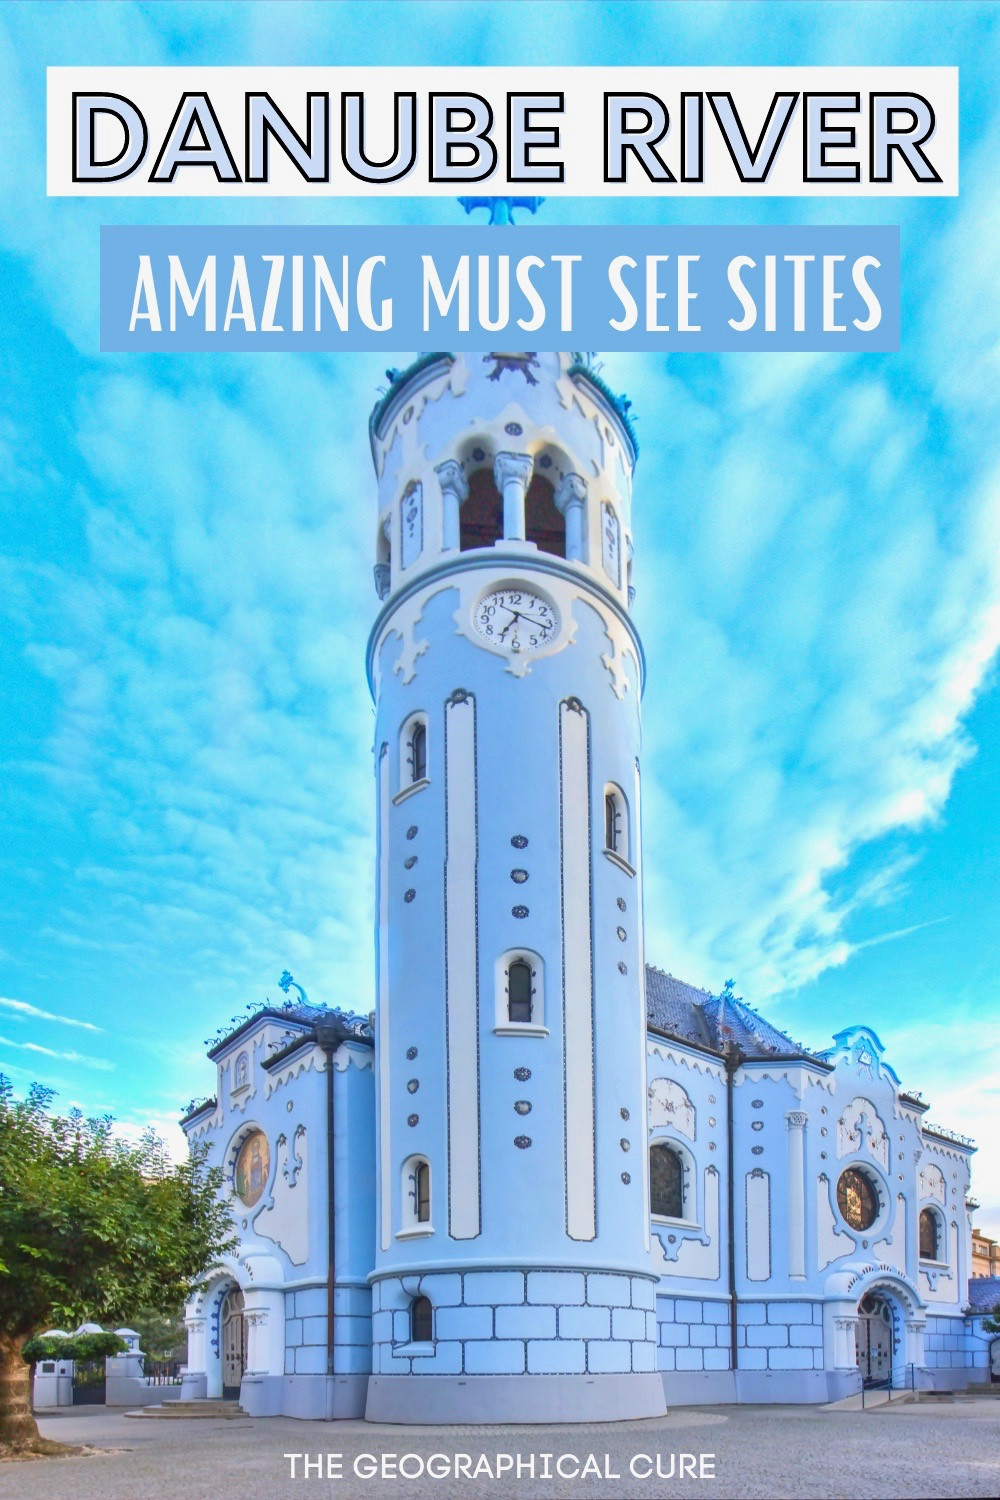 ultimate guide to the must see sites and landmarks along the Danube River